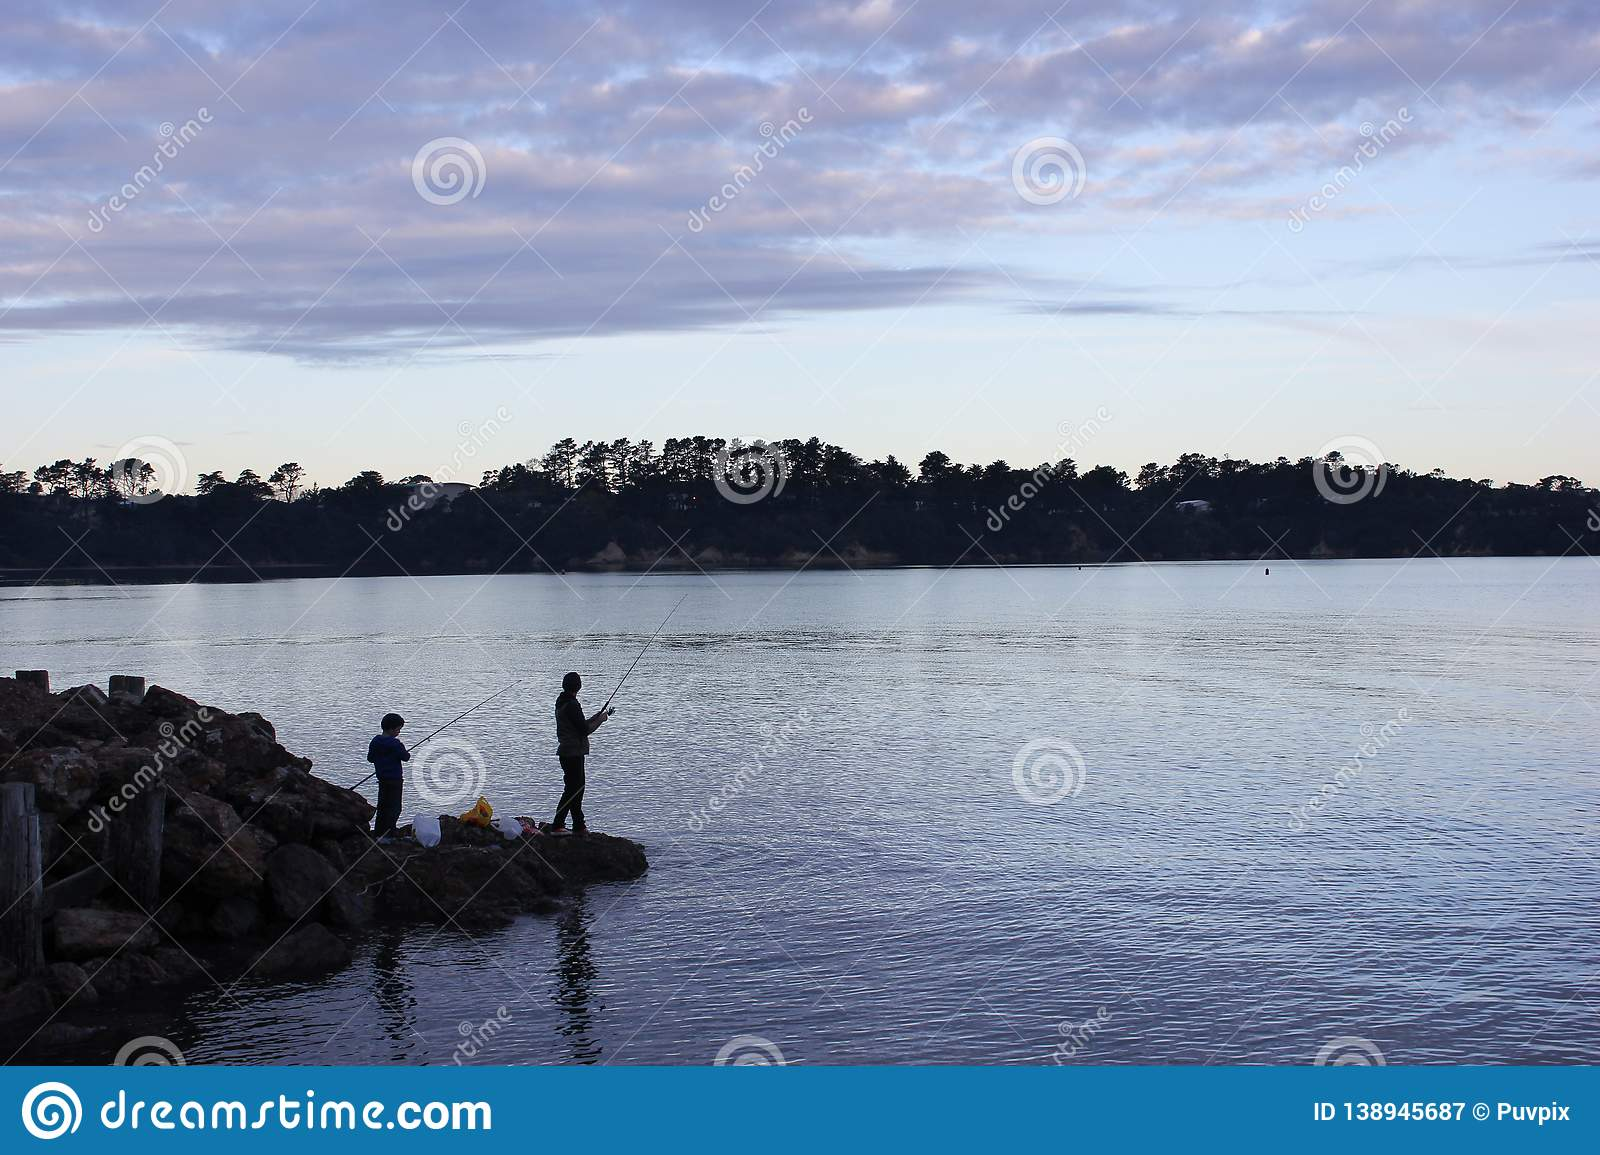 Father and son fishing on a lake